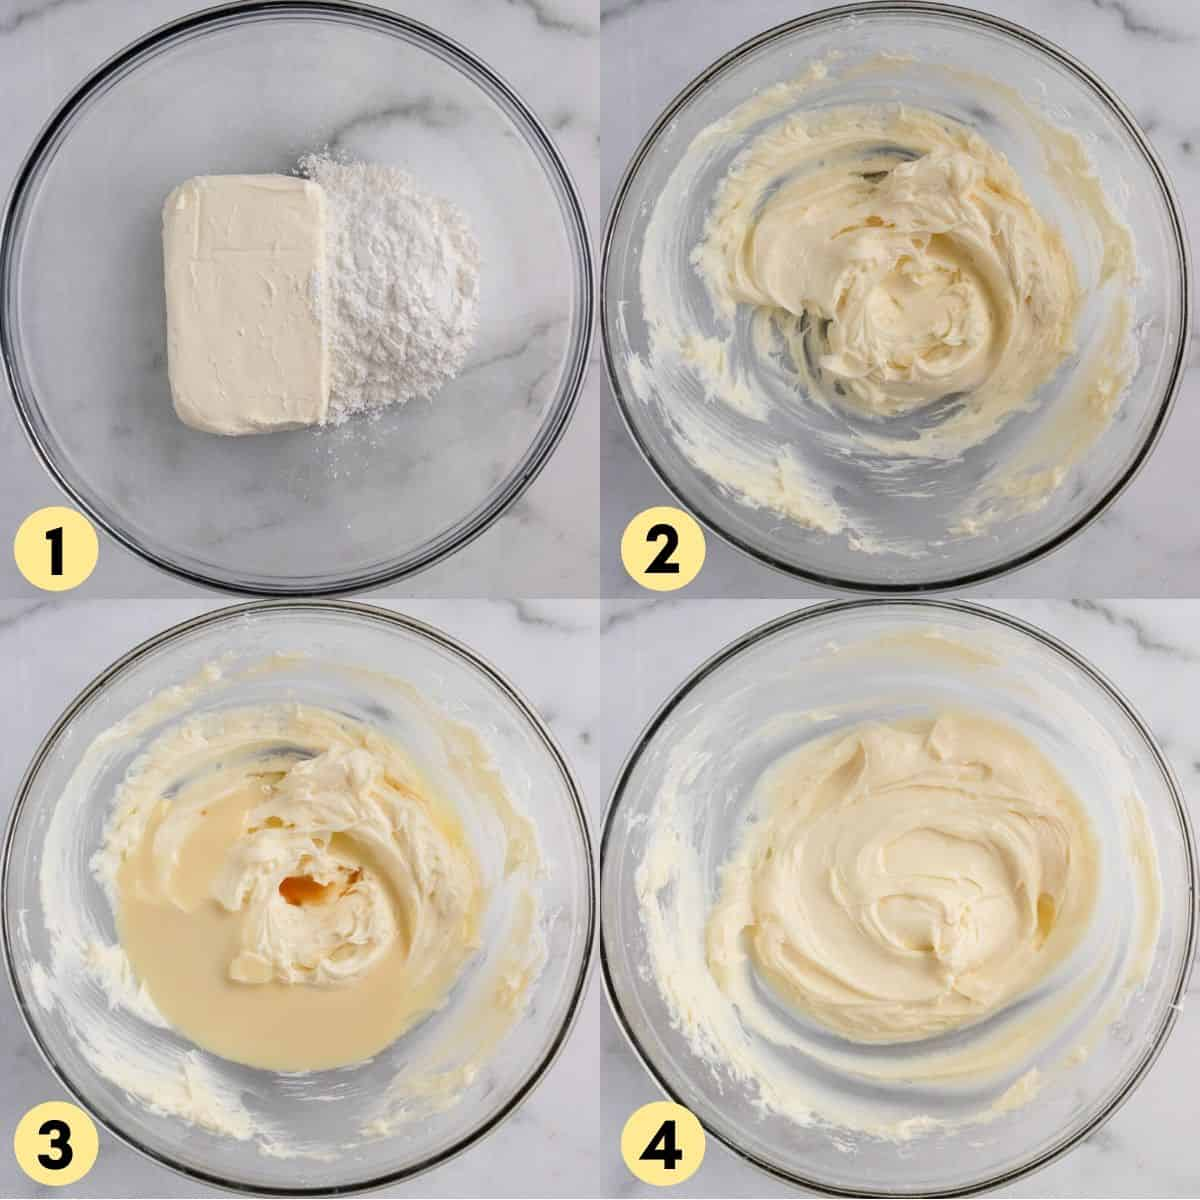 Steps to make recipe with whipped cream cheese.